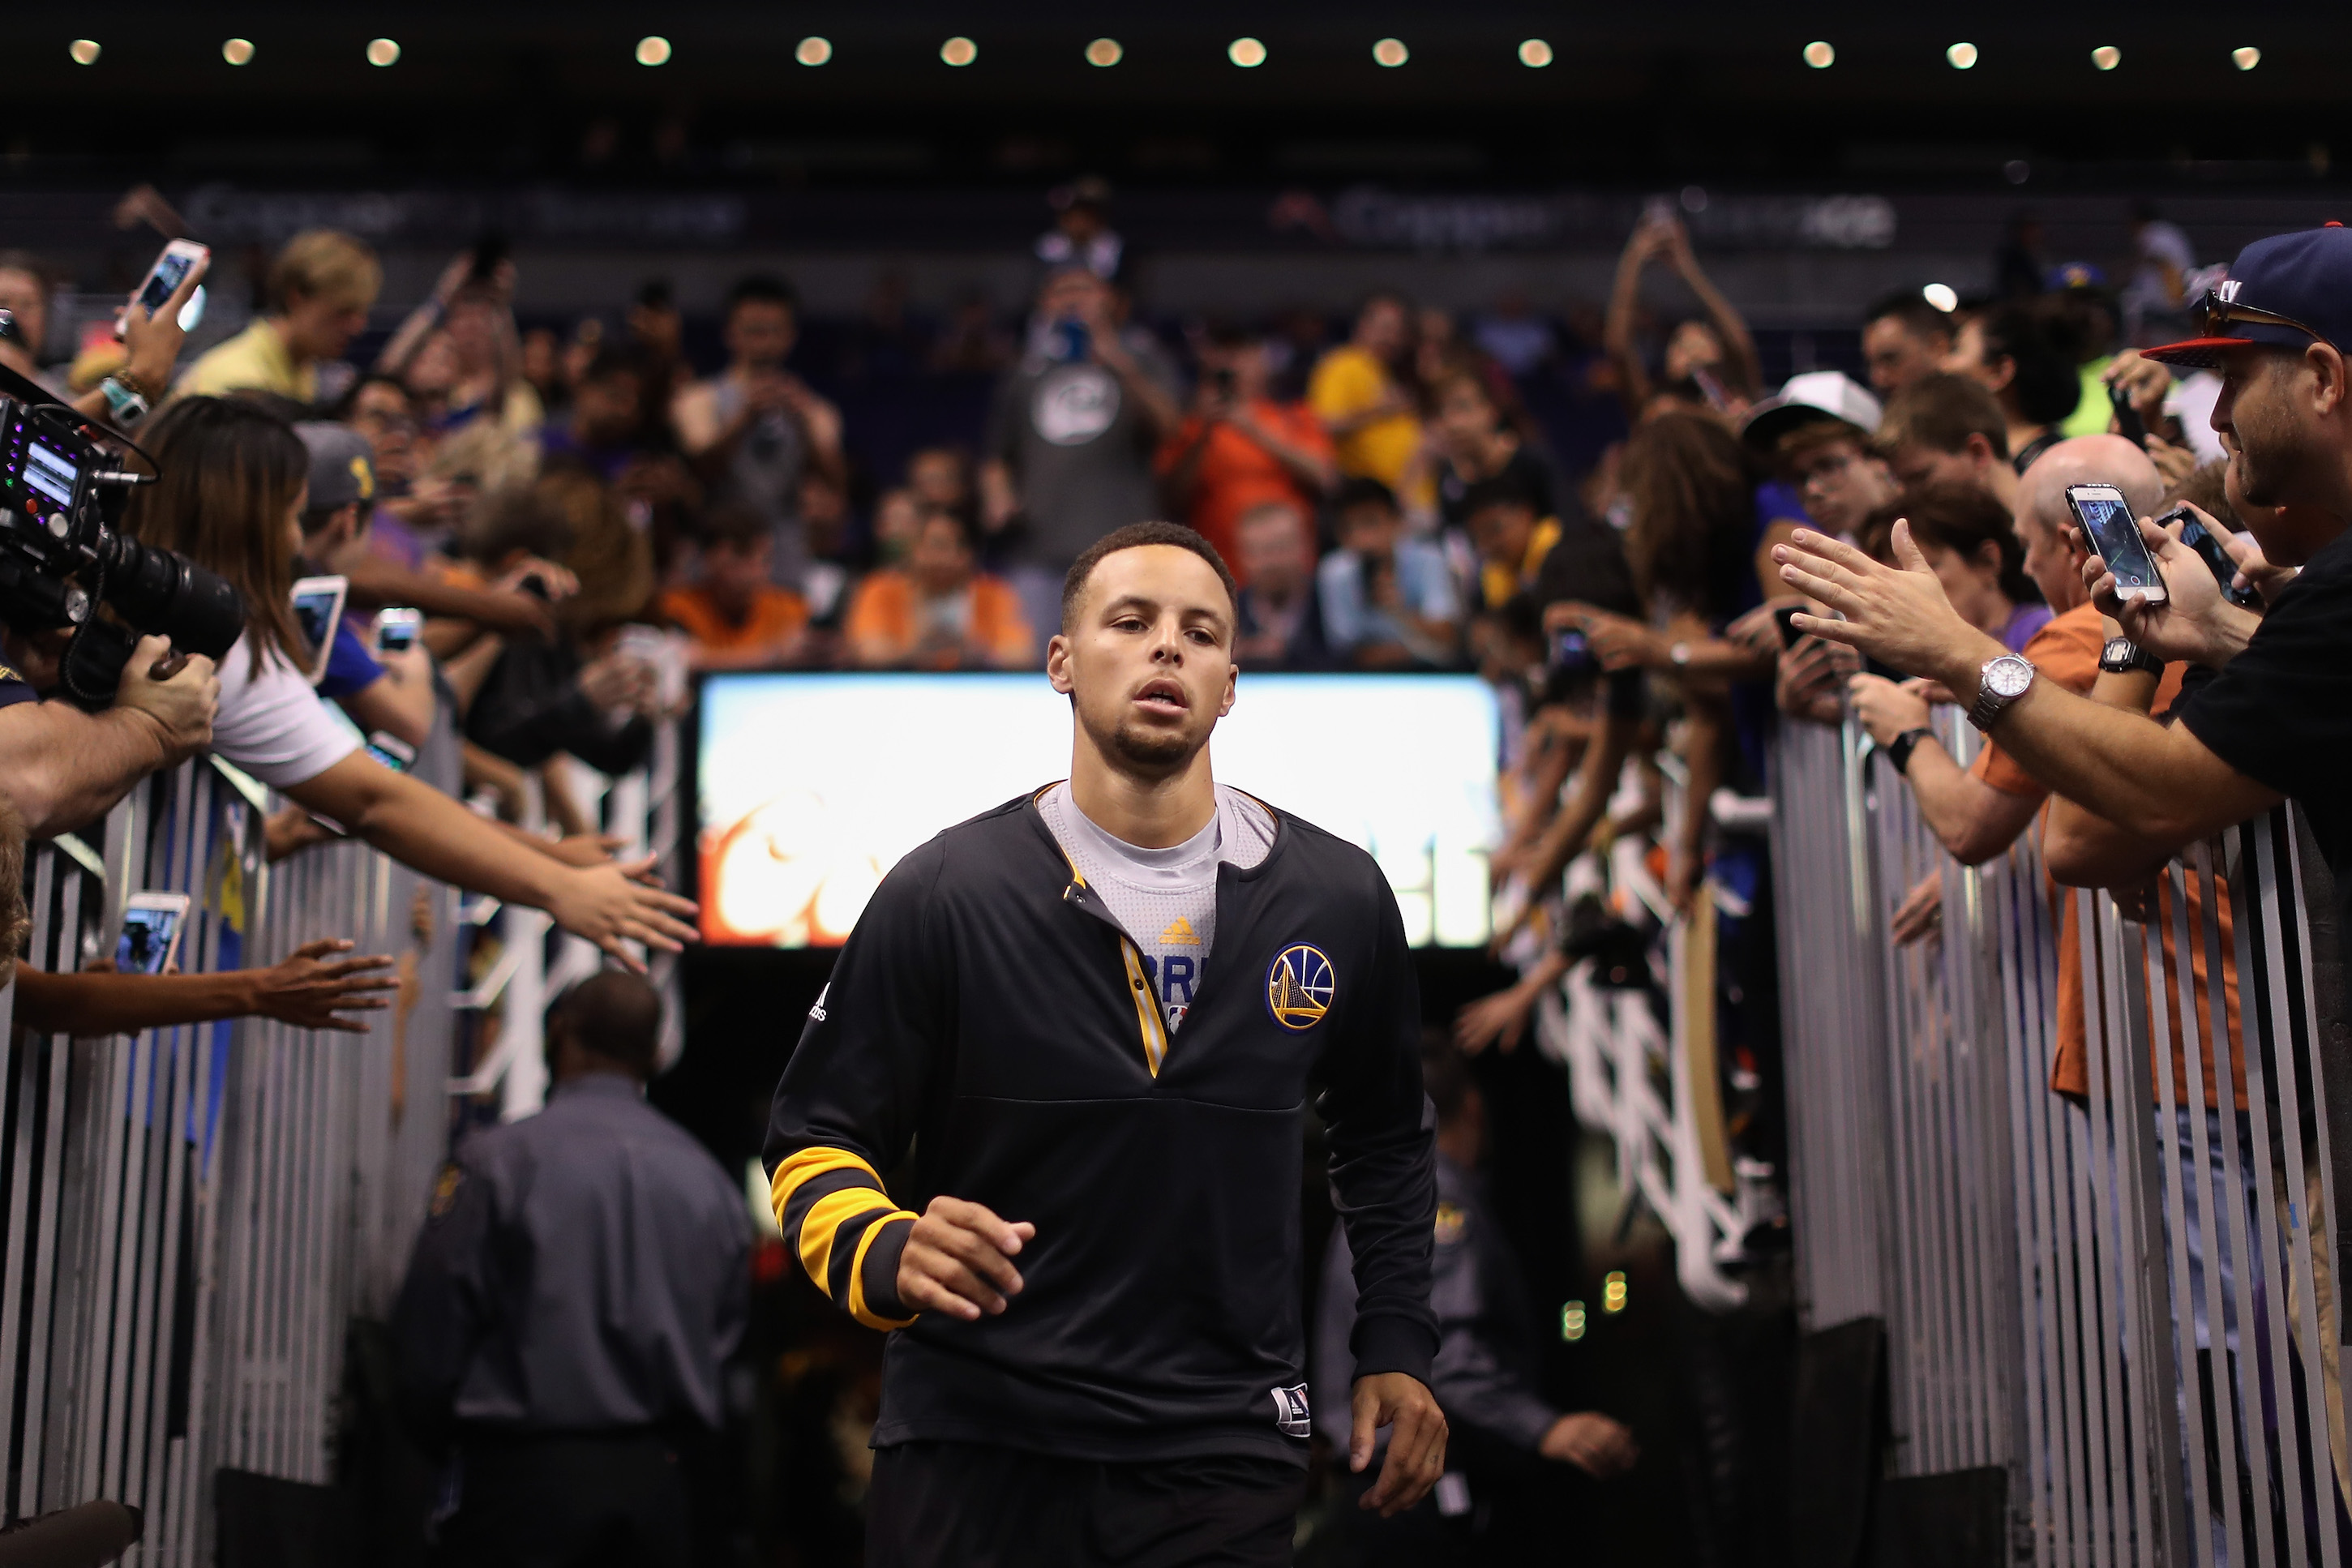 PHOENIX, AZ - OCTOBER 30: Stephen Curry #30 of the Golden State Warriors runs out onto the court before the NBA game against the Phoenix Suns at Talking Stick Resort Arena on October 30, 2016 in Phoenix, Arizona. NOTE TO USER: User expressly acknowledges and agrees that, by downloading and or using this photograph, User is consenting to the terms and conditions of the Getty Images License Agreement. (Photo by Christian Petersen/Getty Images)